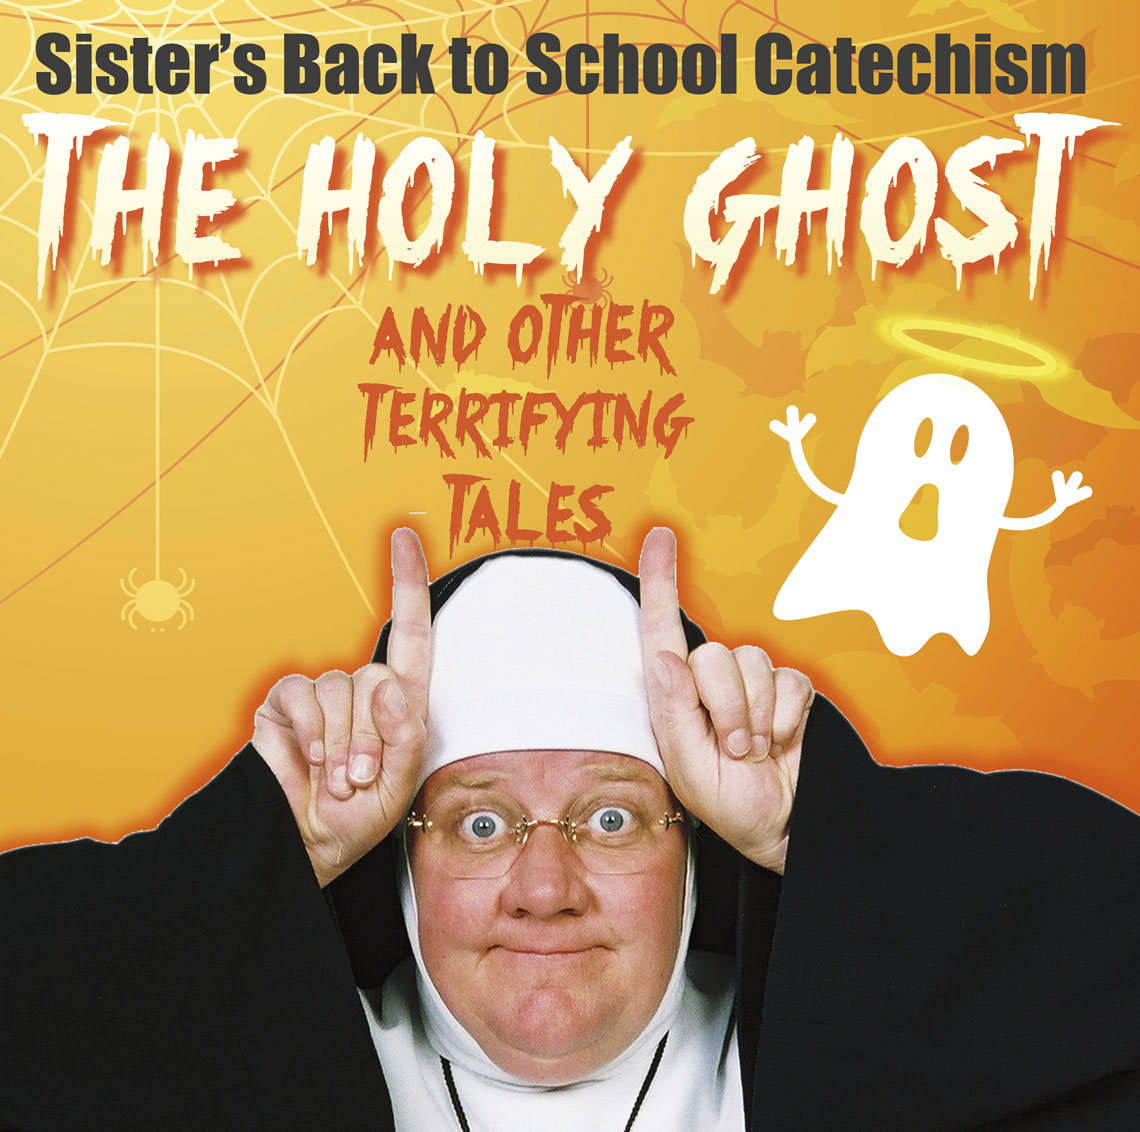 Sisters Back to School Catechism